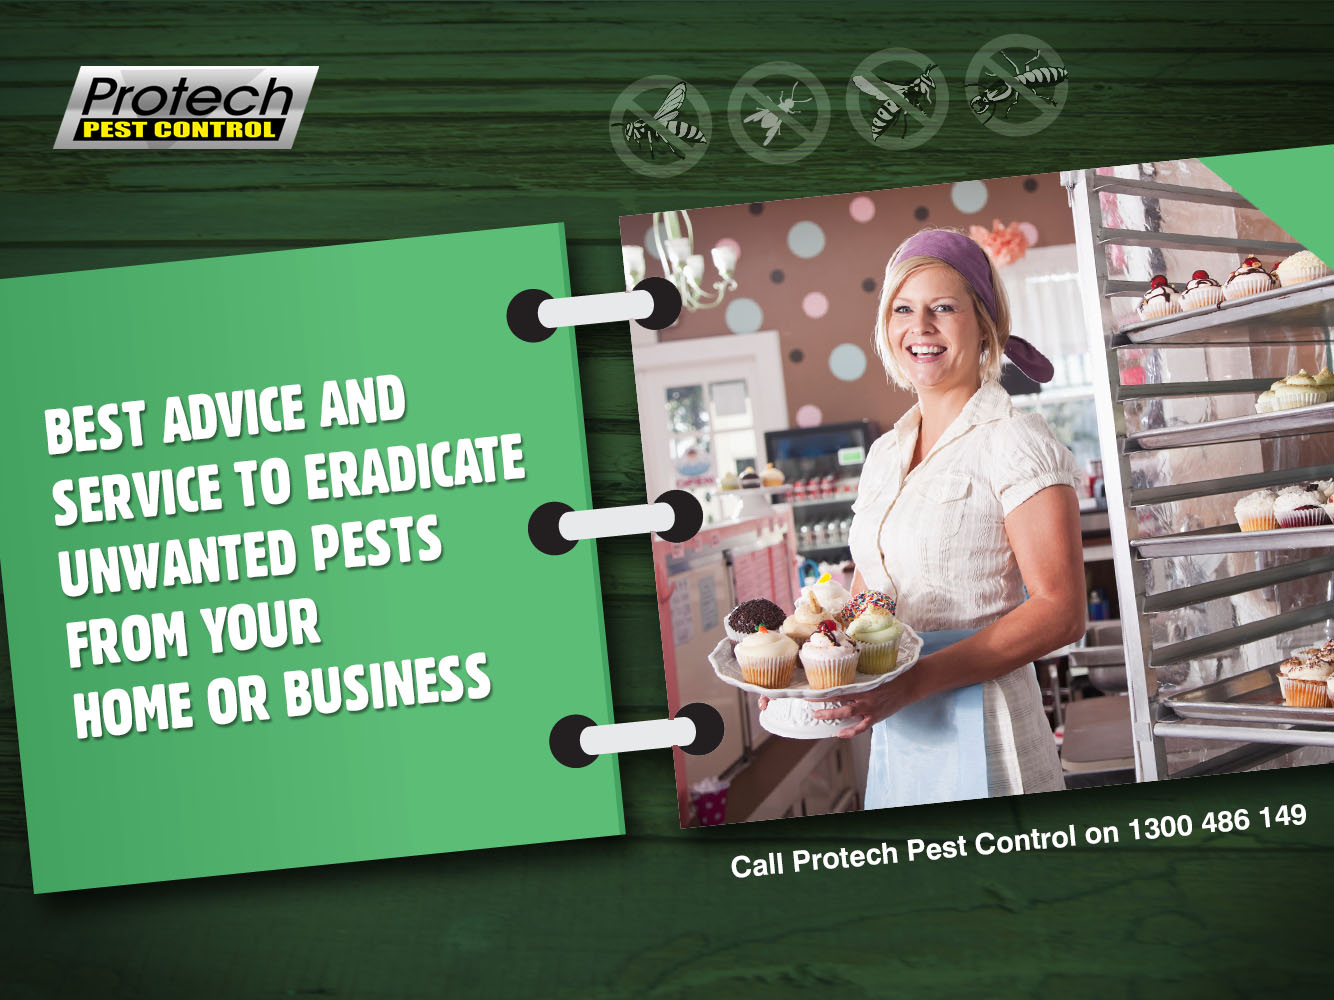 Home or business pest control